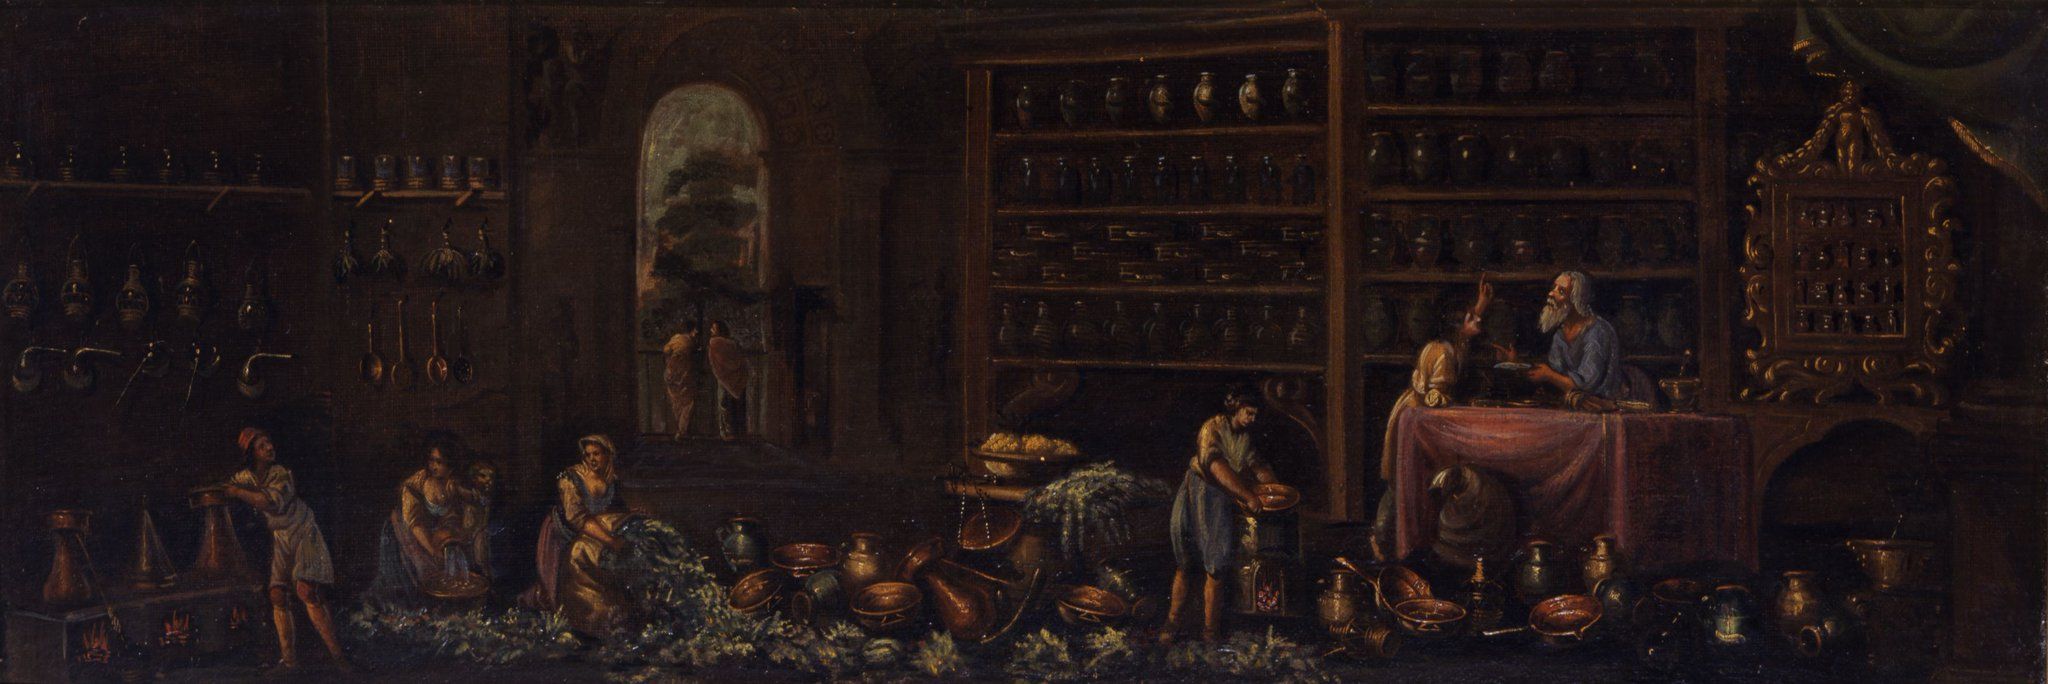 Women also frequently appear in early modern depictions of apothecary shops and pharmacies #histSTM #MuseumMonday #WomensHistoryMonth https://t.co/q7NTHSaUNU